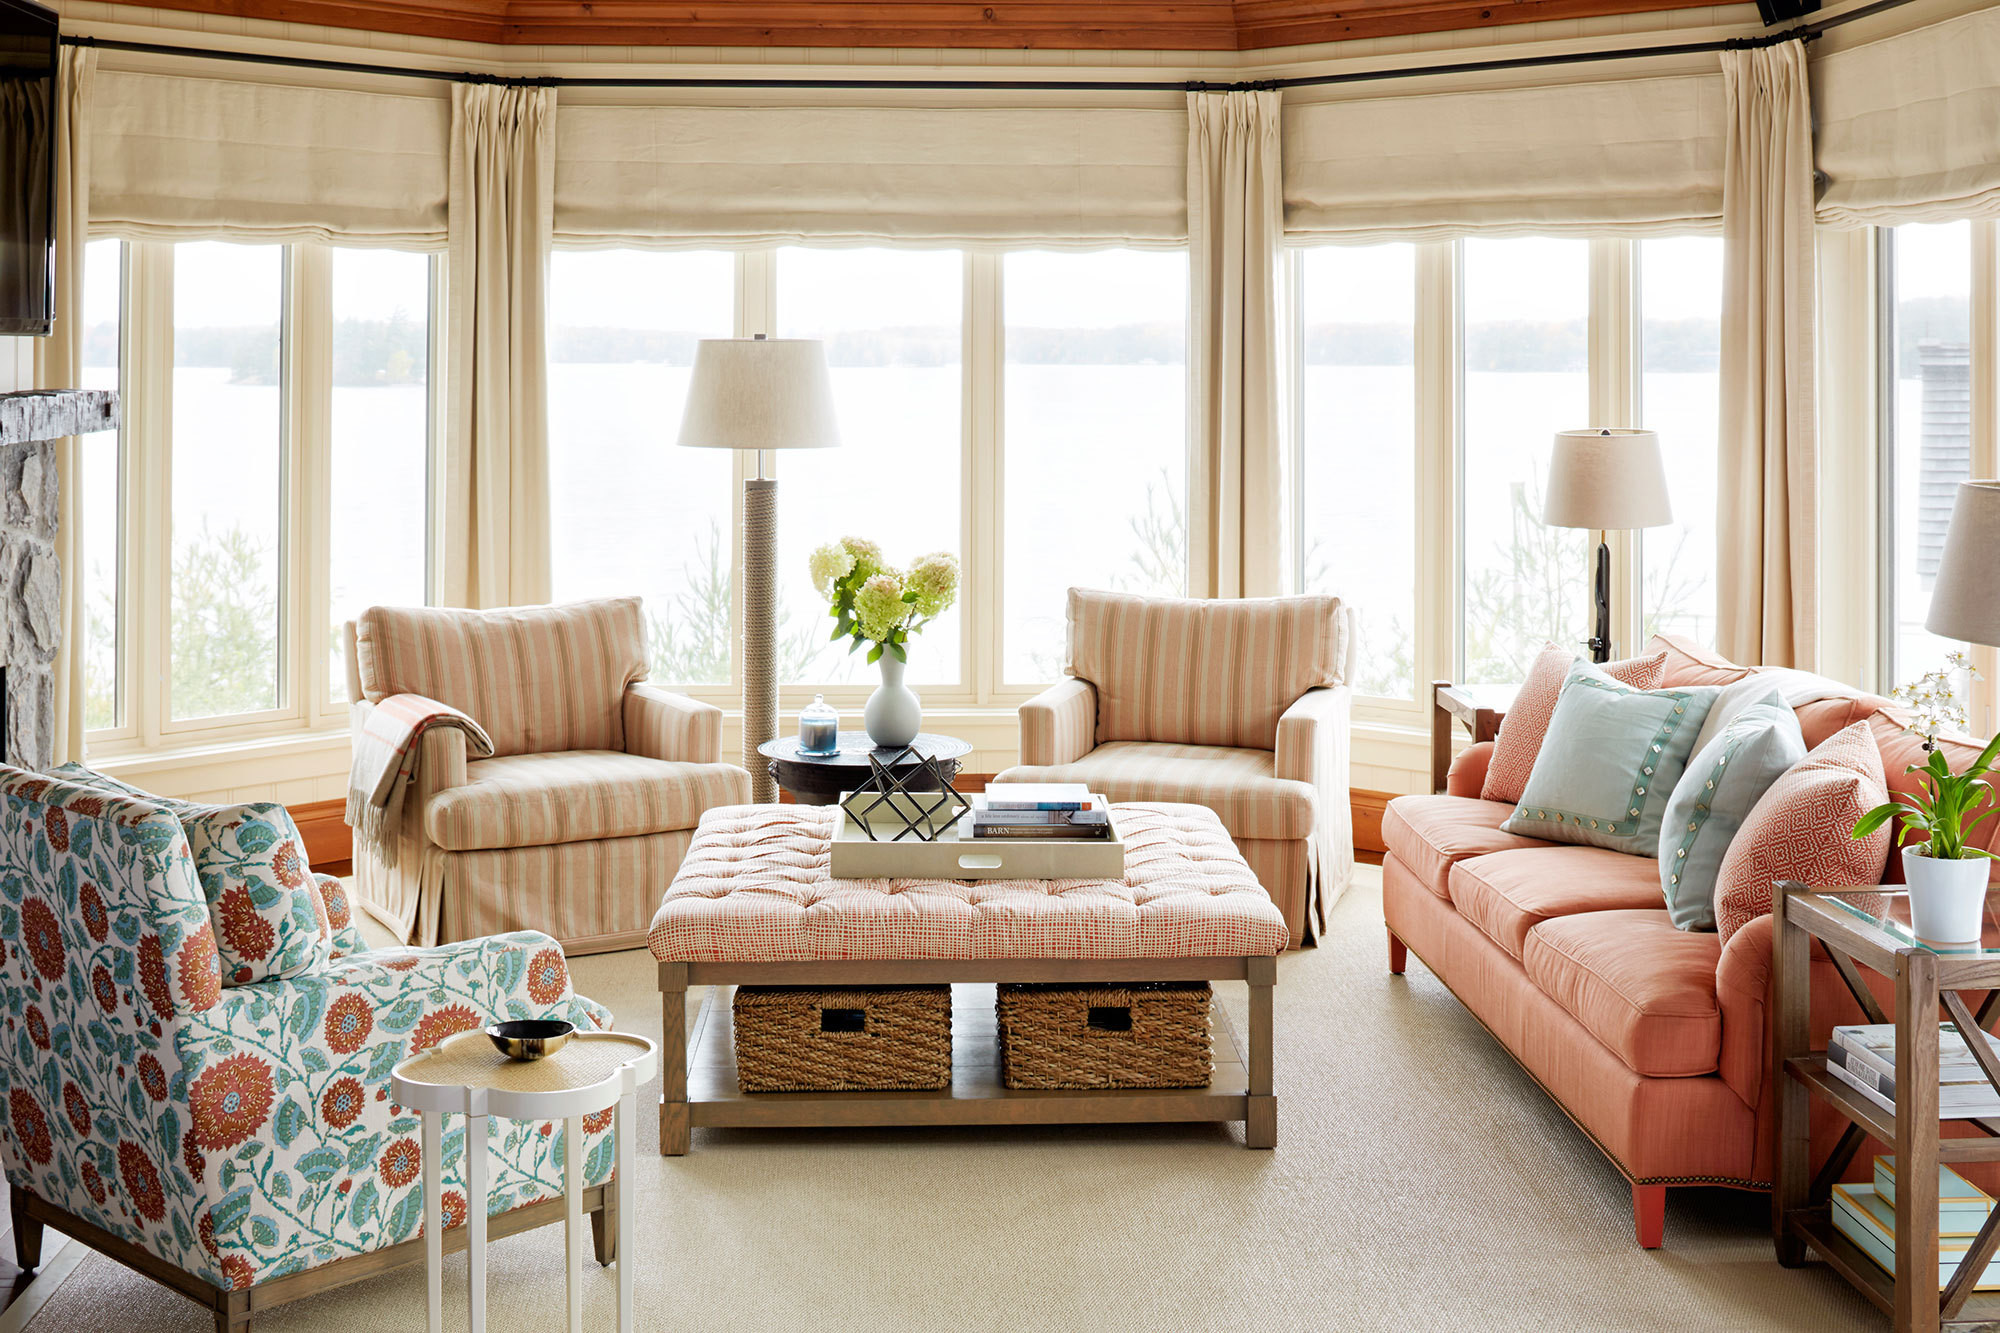 lake house living room ideas interior paint color schemes a sophisticated with subtle palette home tour lonny in the family overlooking joseph upholstered furnishings and understated nbsp hues create